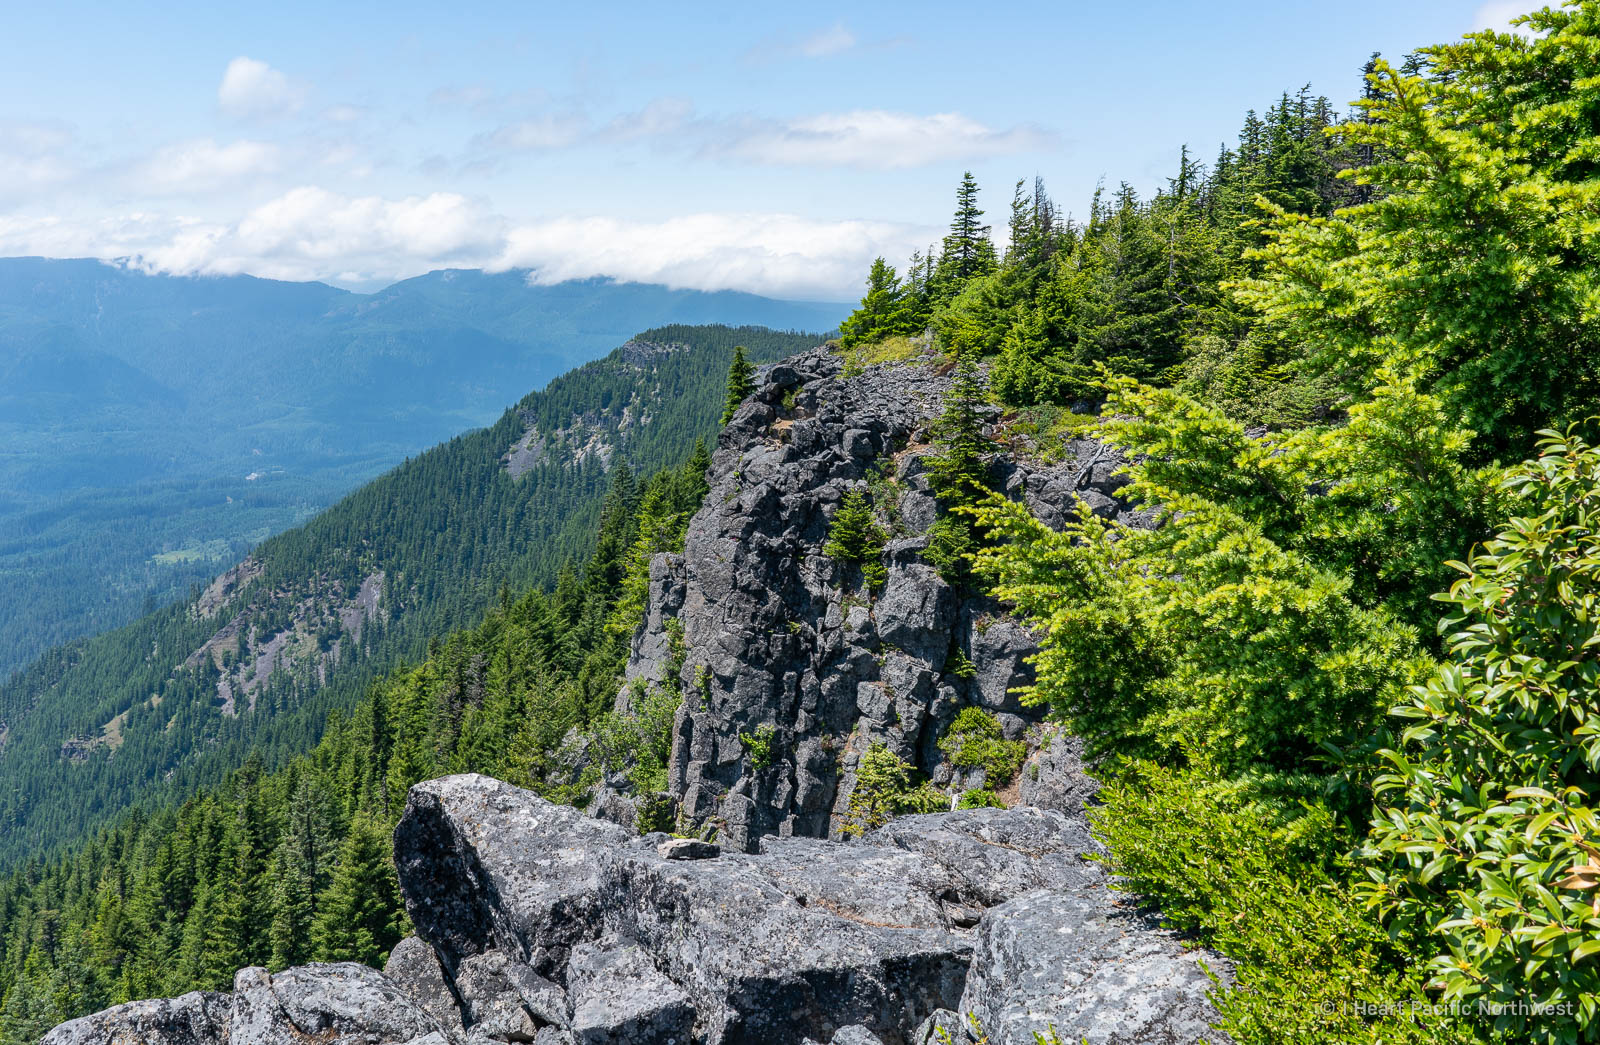 Mount Mitchell hike - Roaring River Wilderness